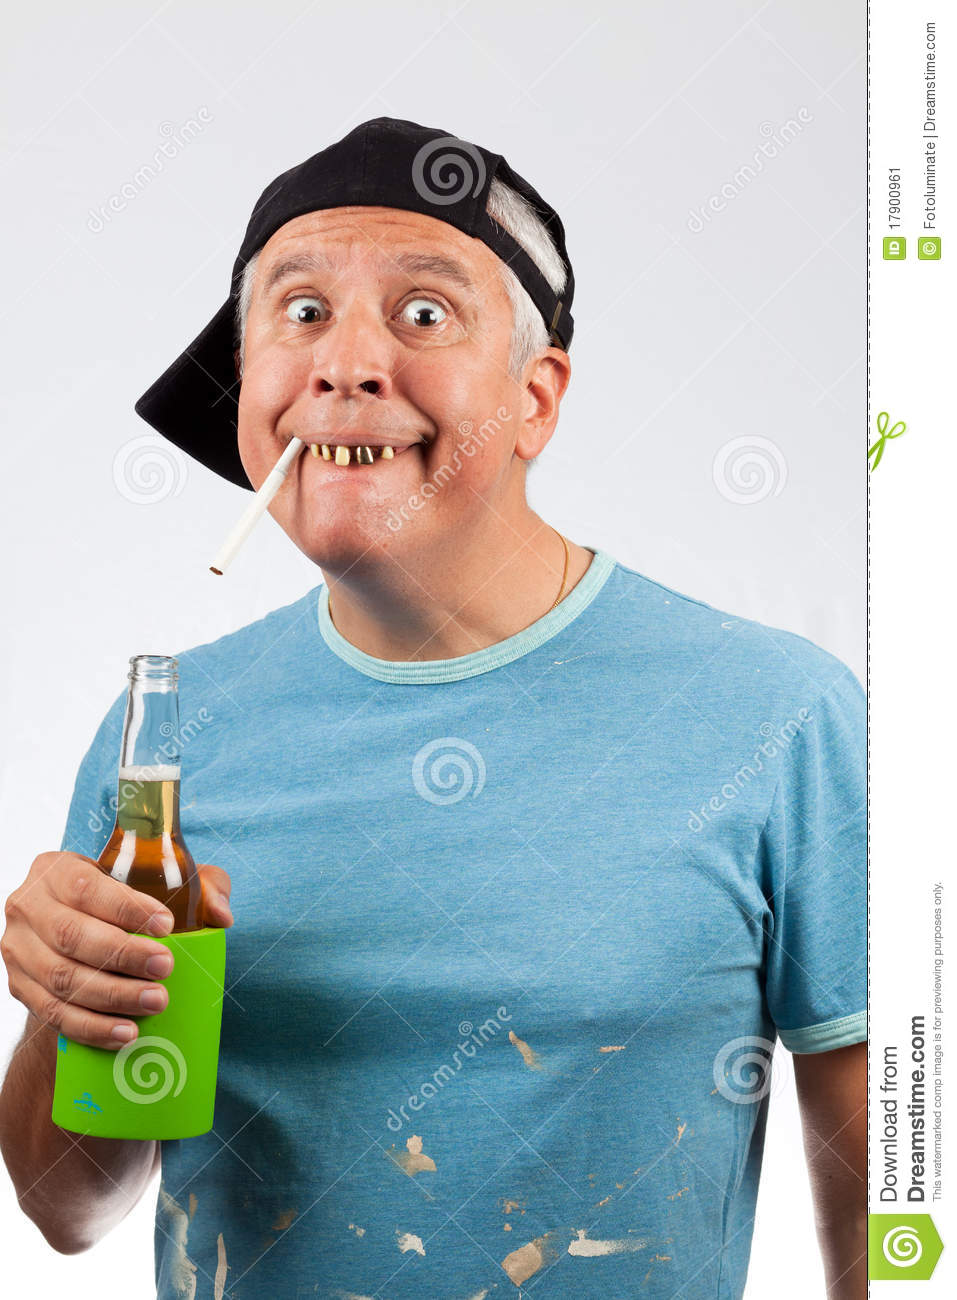 Funny Looking Middle Age Man With Bad Teeth With A Cigarette In Mouth